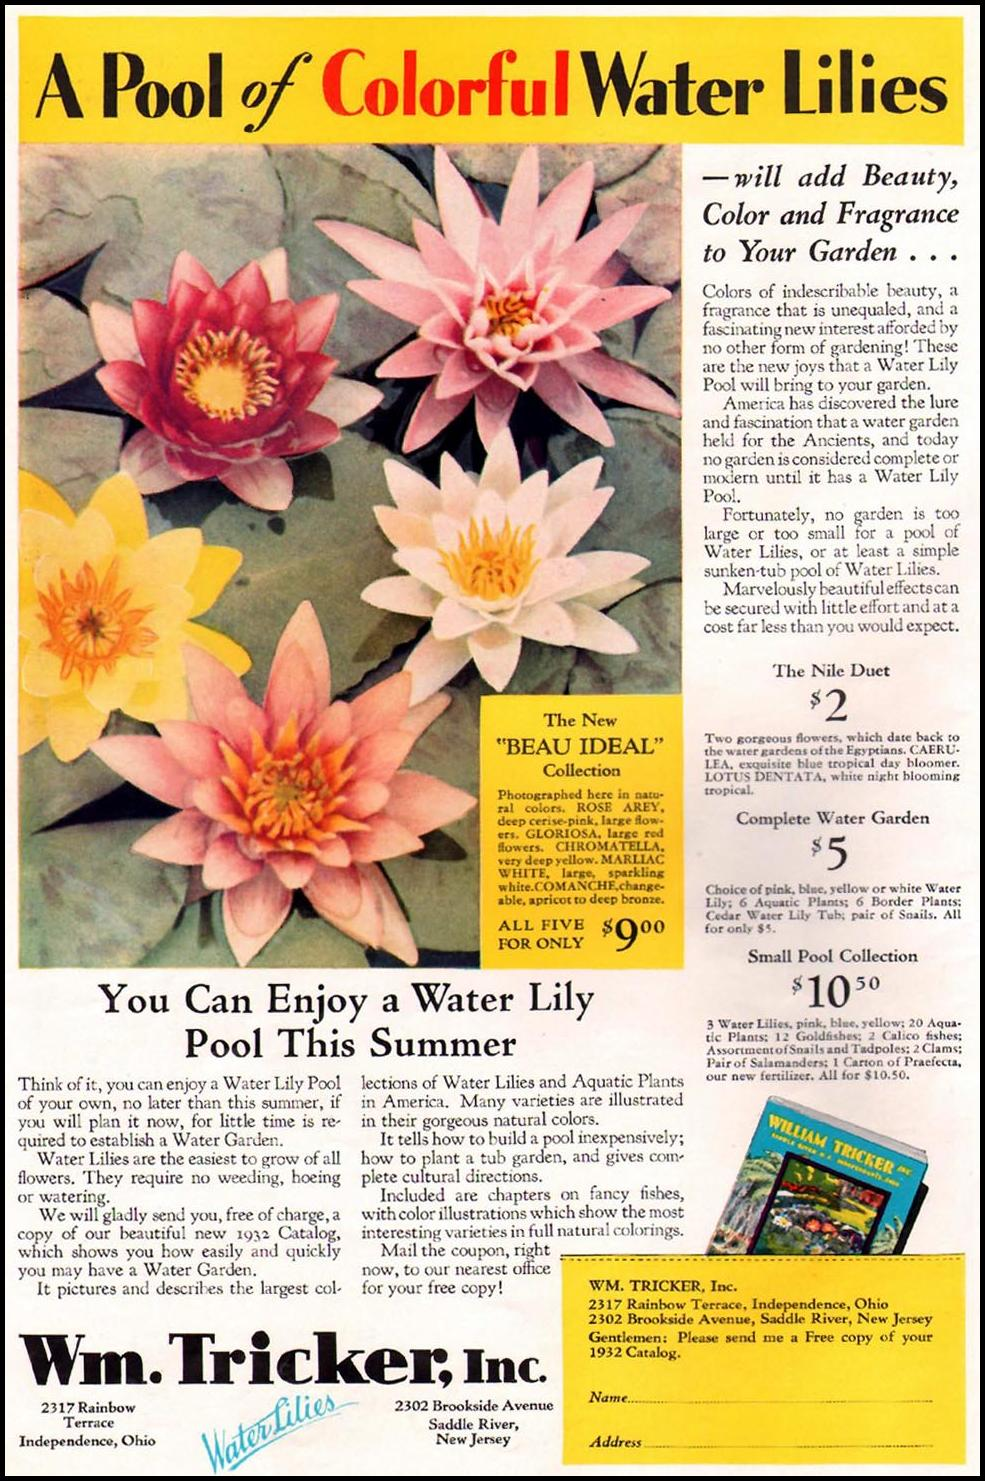 WATER LILIES BETTER HOMES AND GARDENS 03/01/1932 p. 38